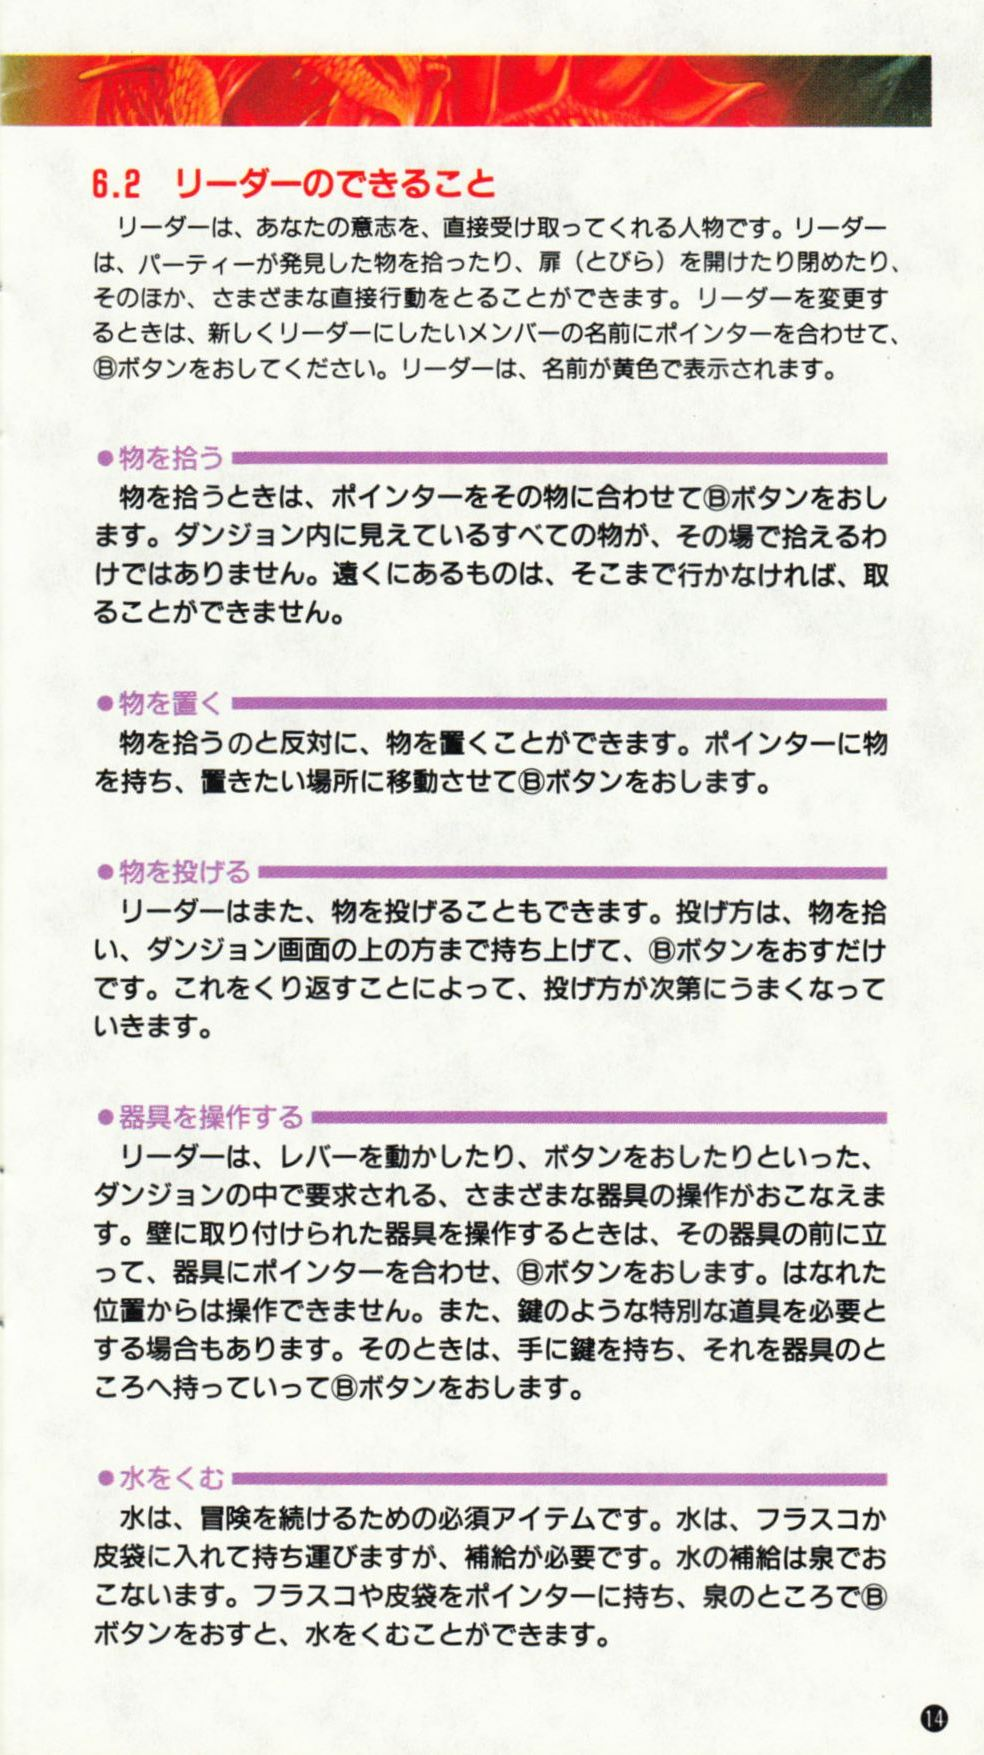 Game - Dungeon Master - JP - Super Famicom - Manual - Page 017 - Scan